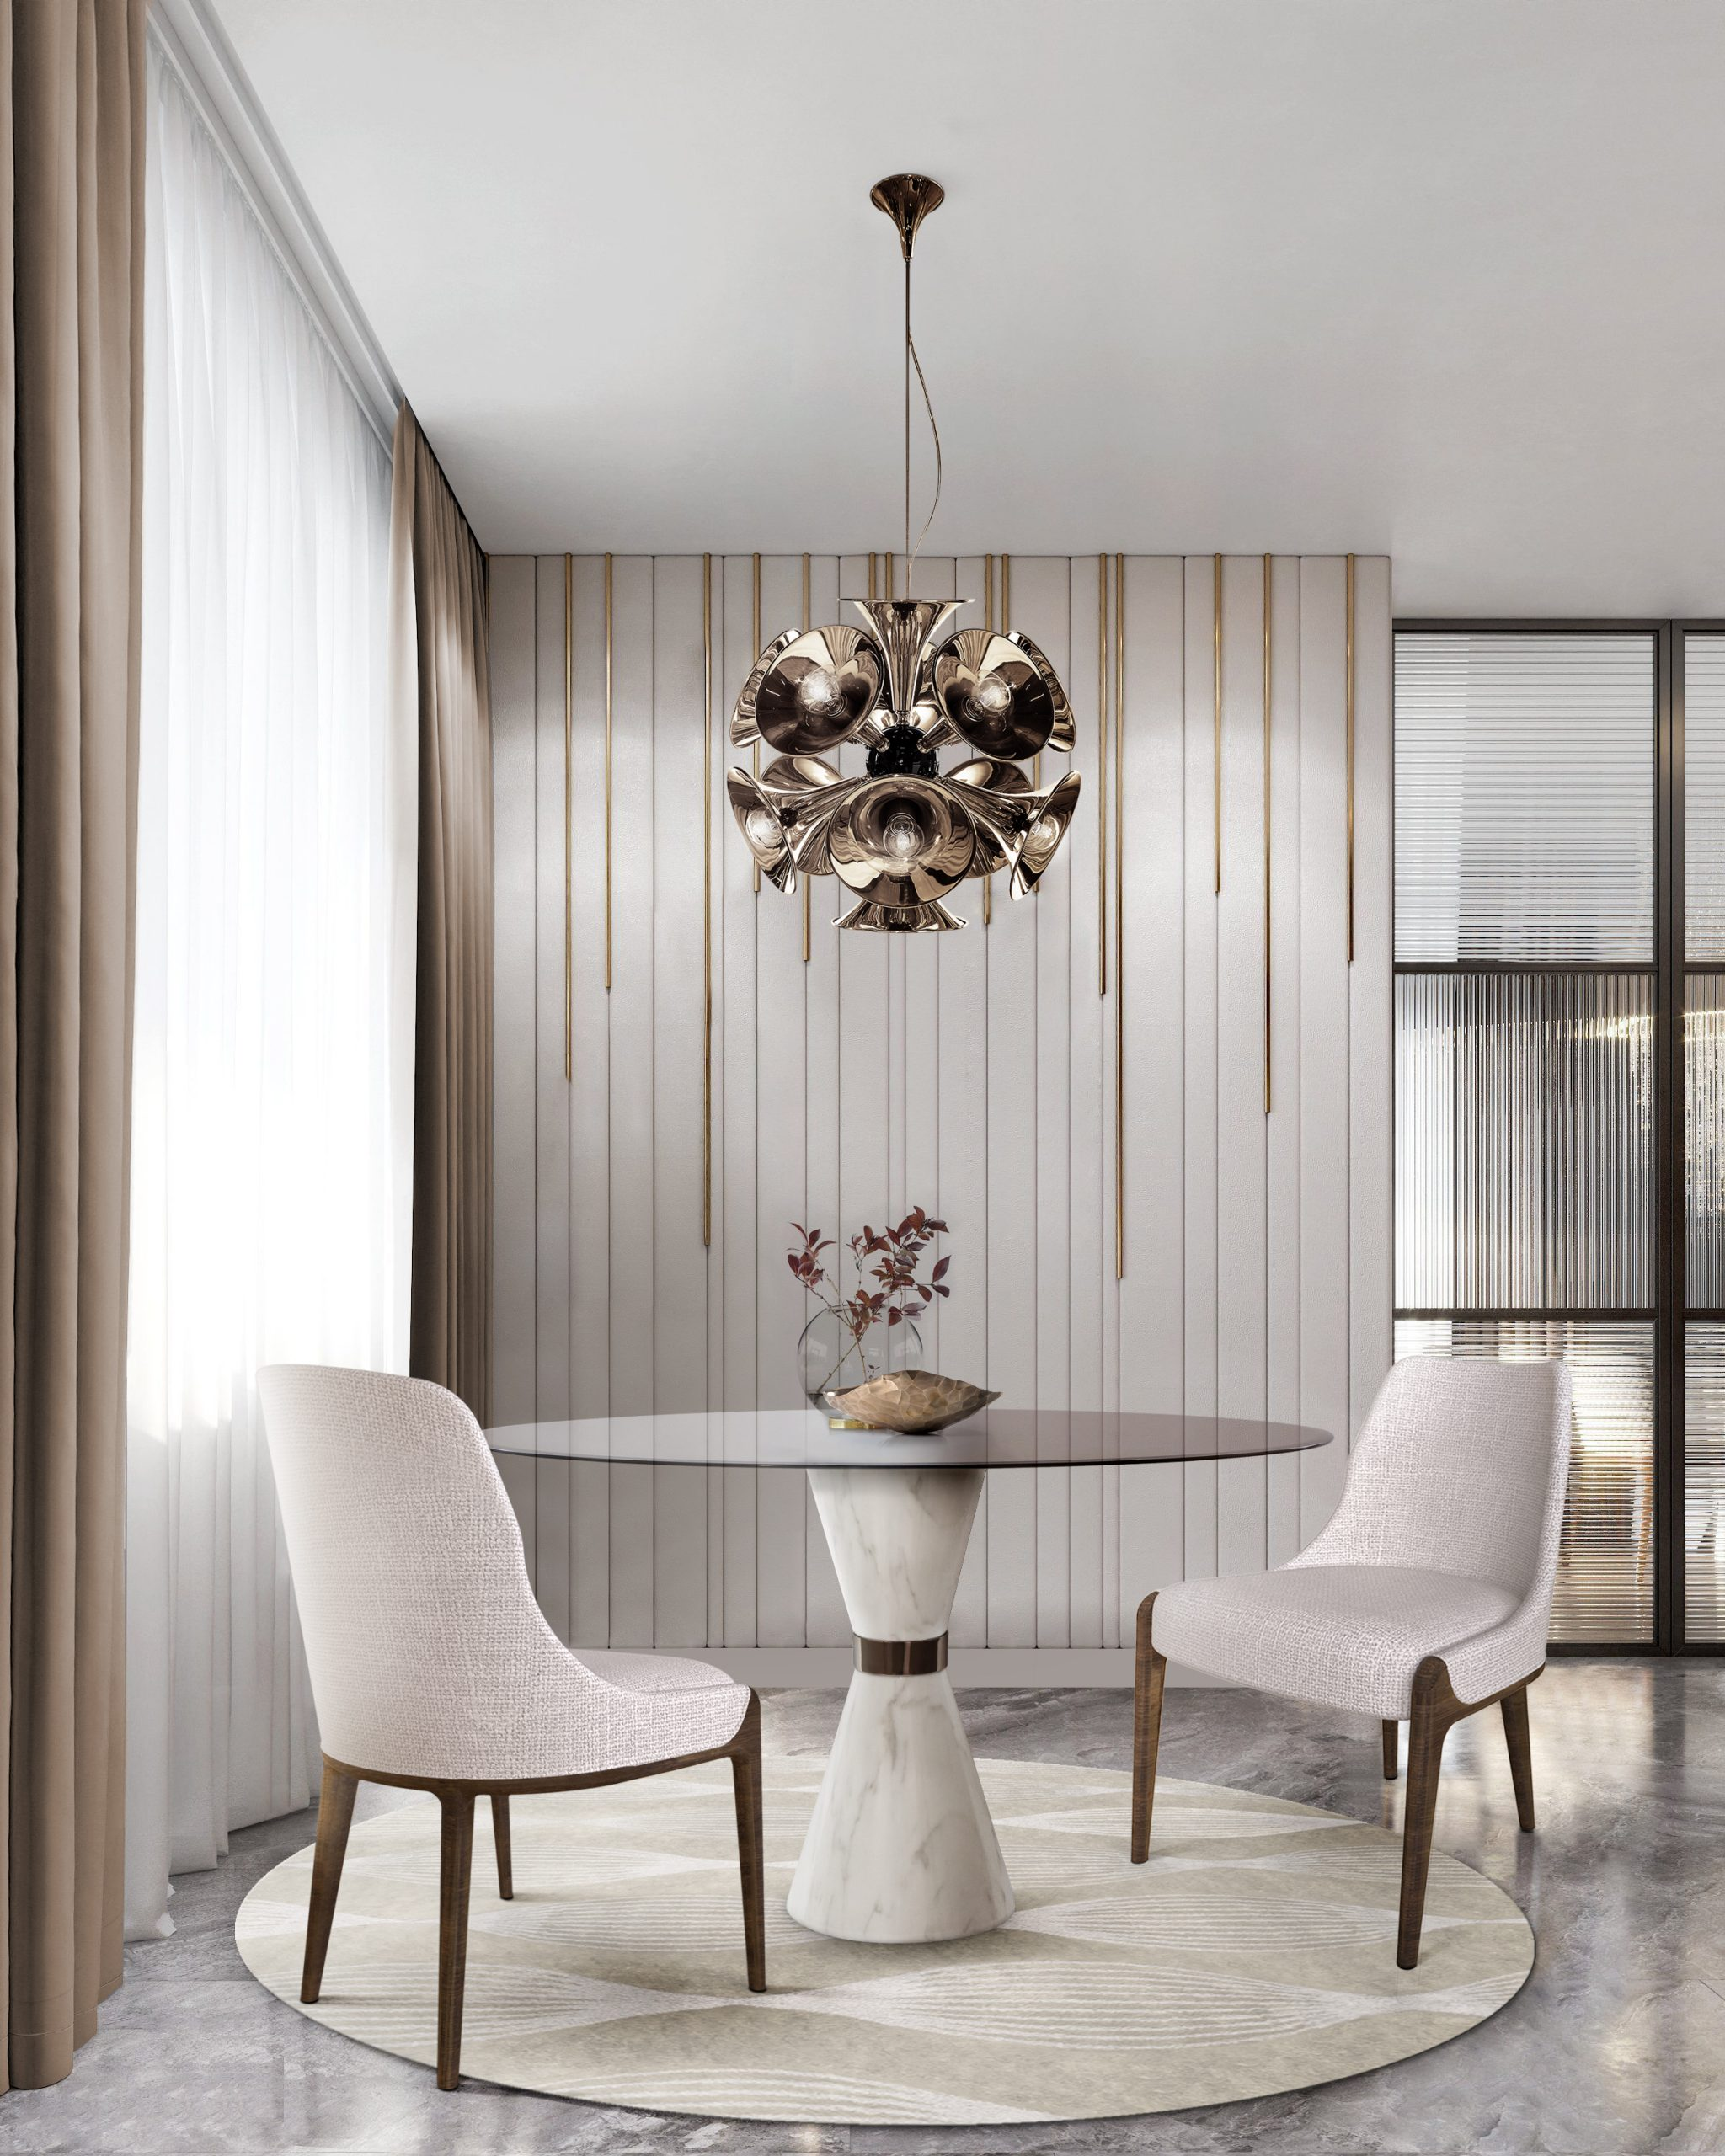 Let These Suspension Lamps be the Spotlight of Your Dining Table! suspension lamps Let These Suspension Lamps be the Spotlight of Your Dining Table! 6 6 scaled